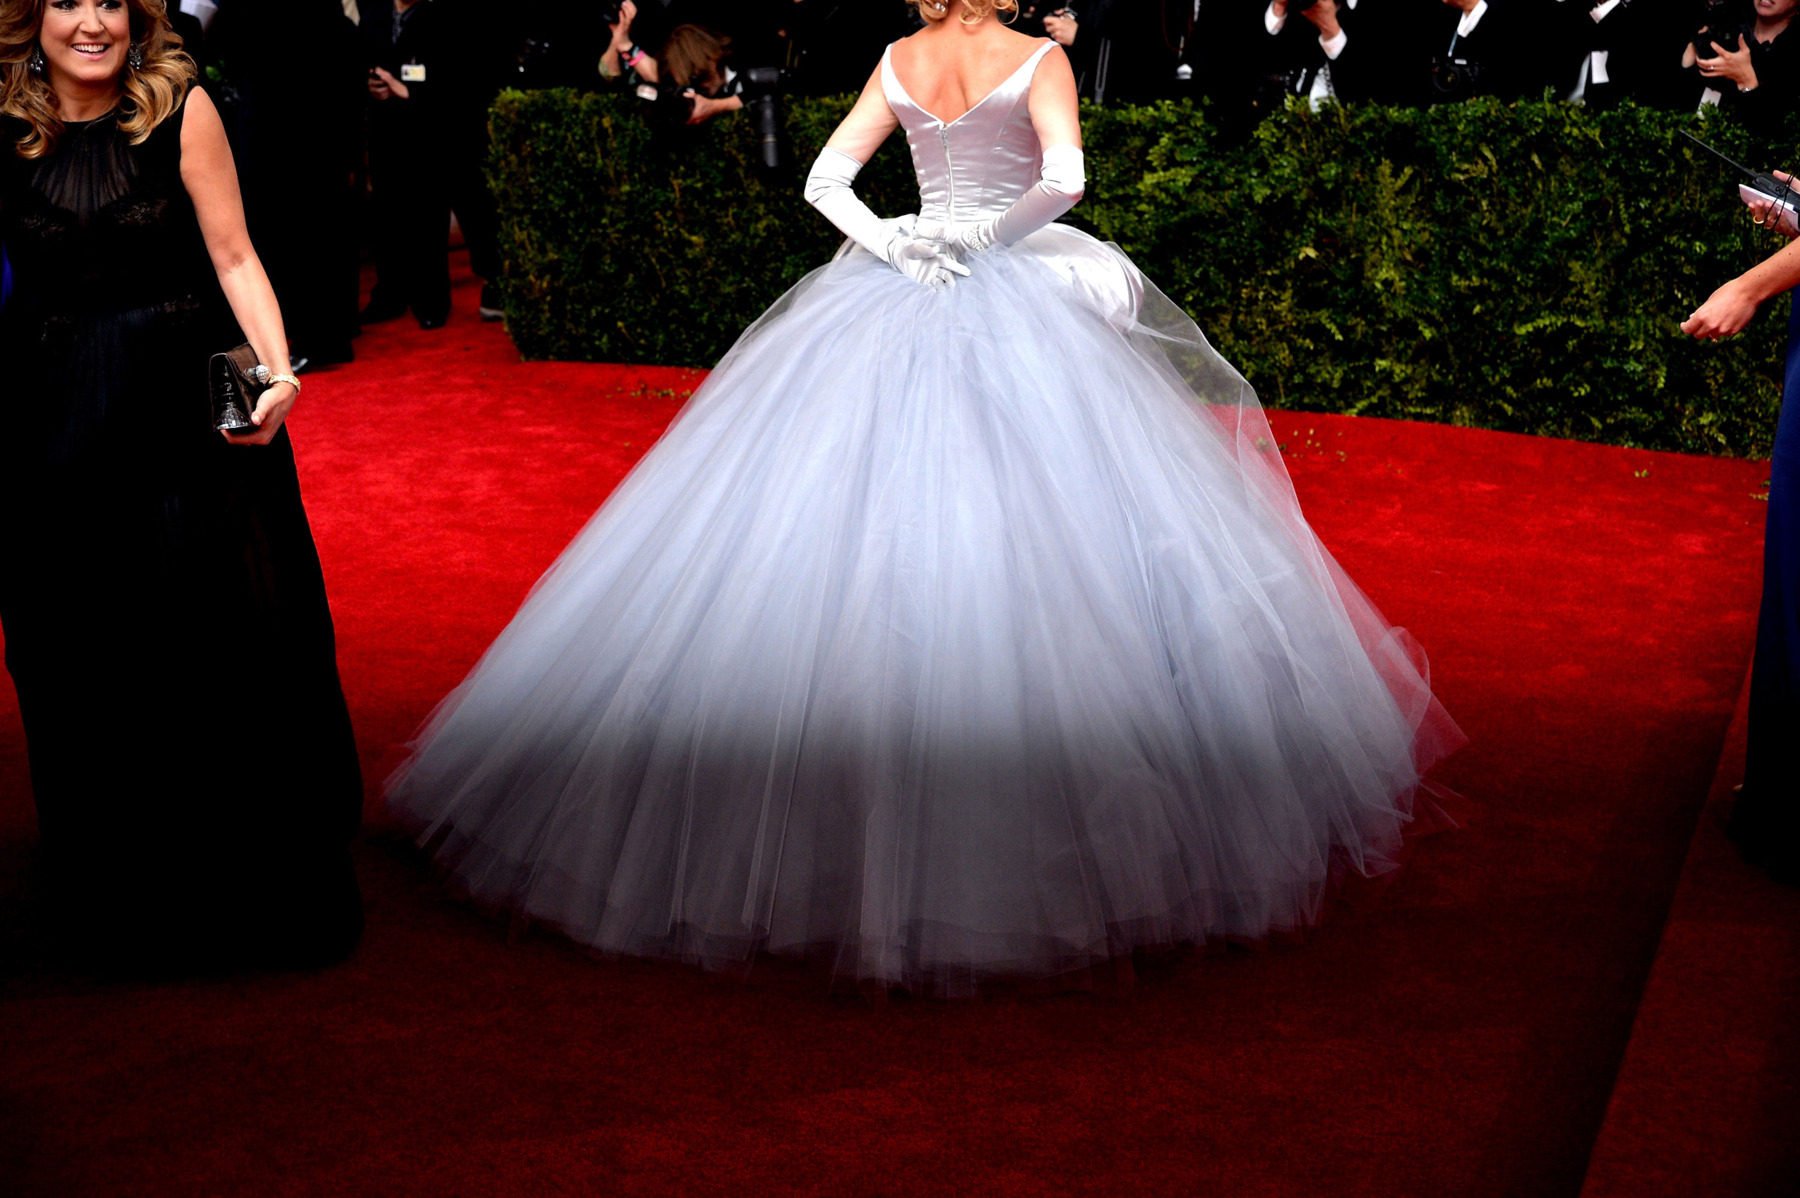 Not Another Pop Culture Blog: Fashion Spotlight - 2014 Met Gala